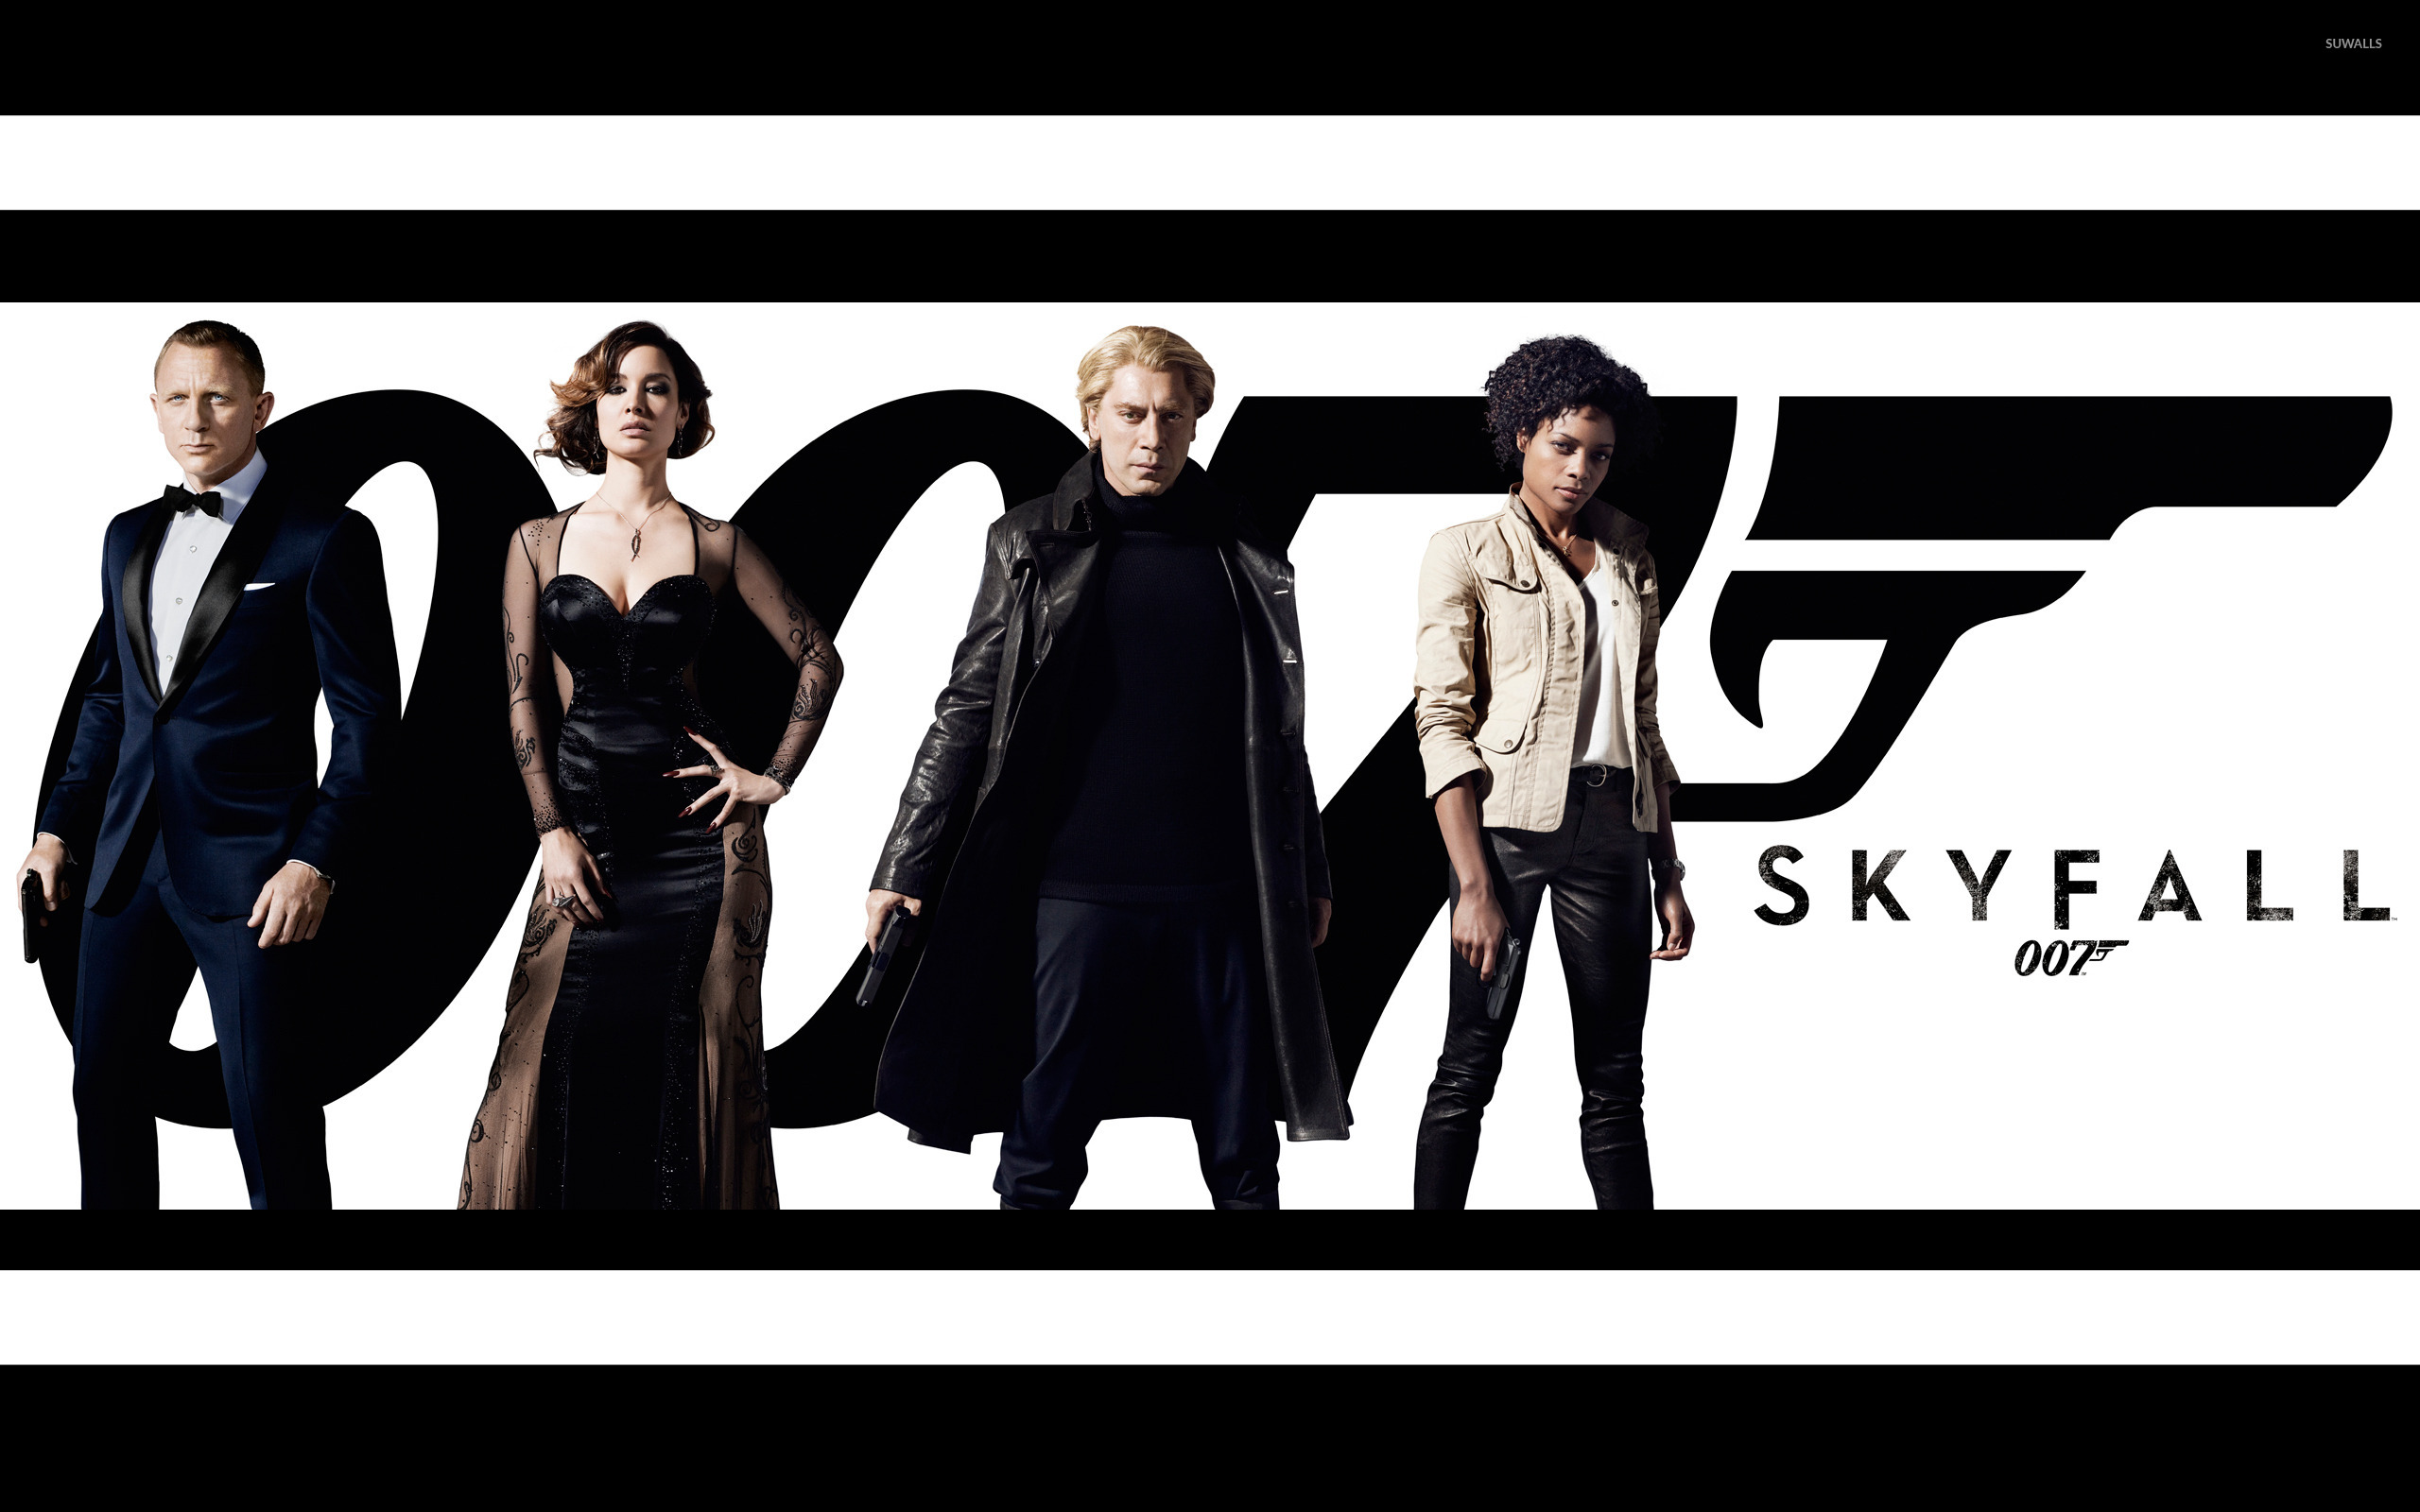 skyfall wallpaper - movie wallpapers - #14297